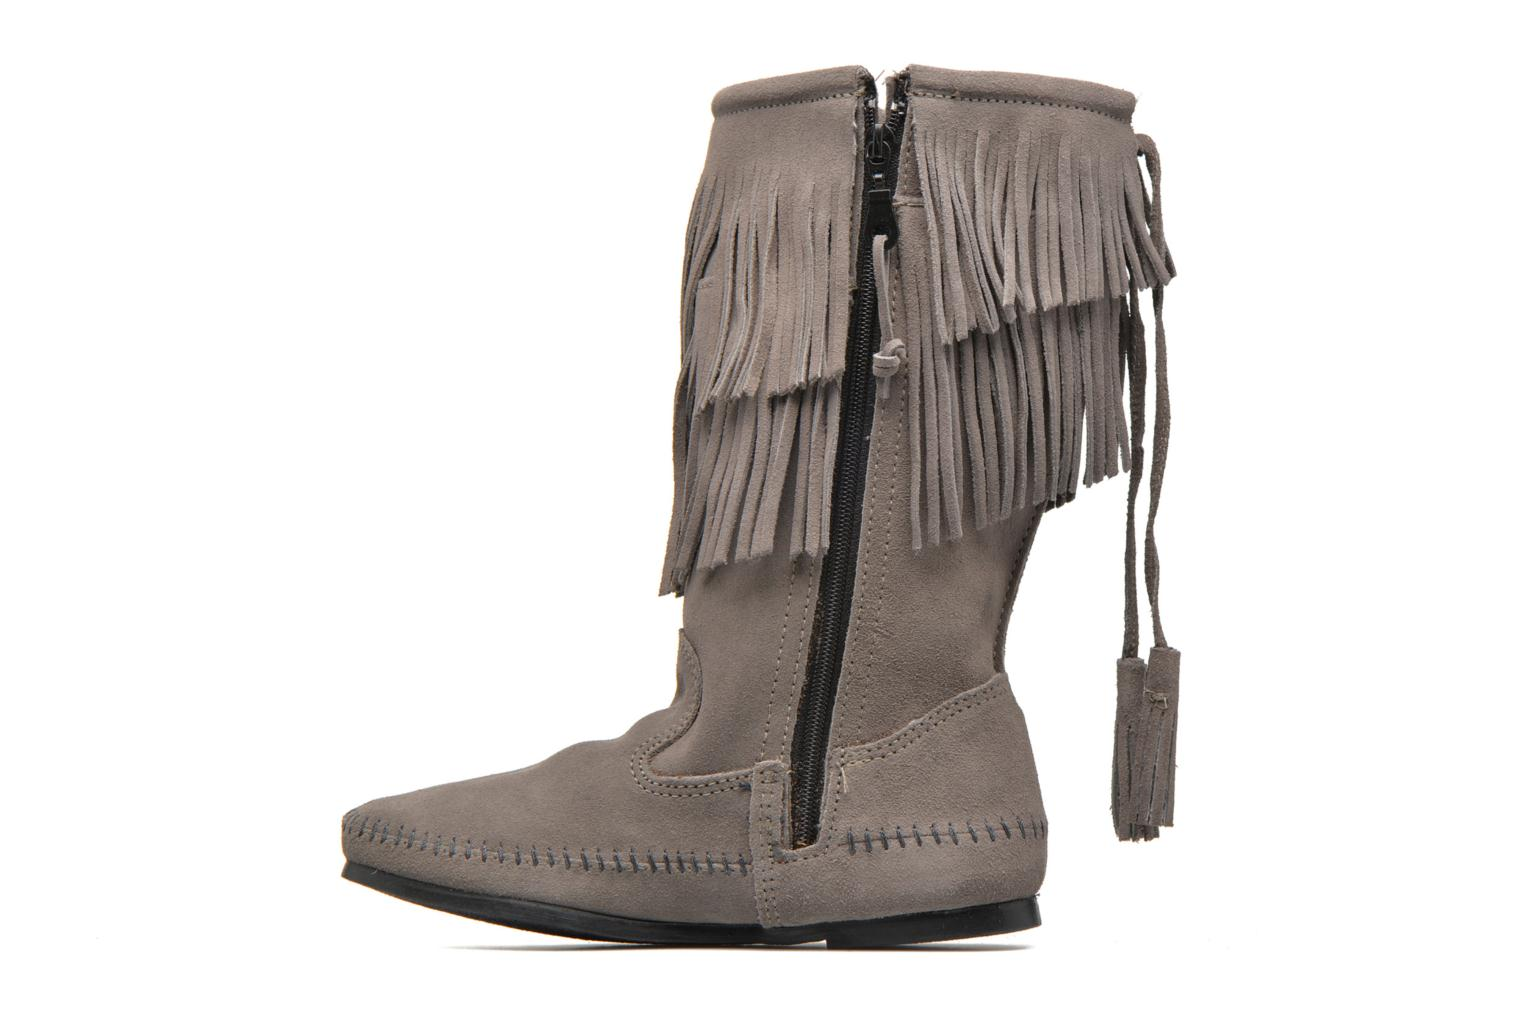 Bottines et boots Minnetonka CALF HI 2LAYER FRINGE Gris vue face